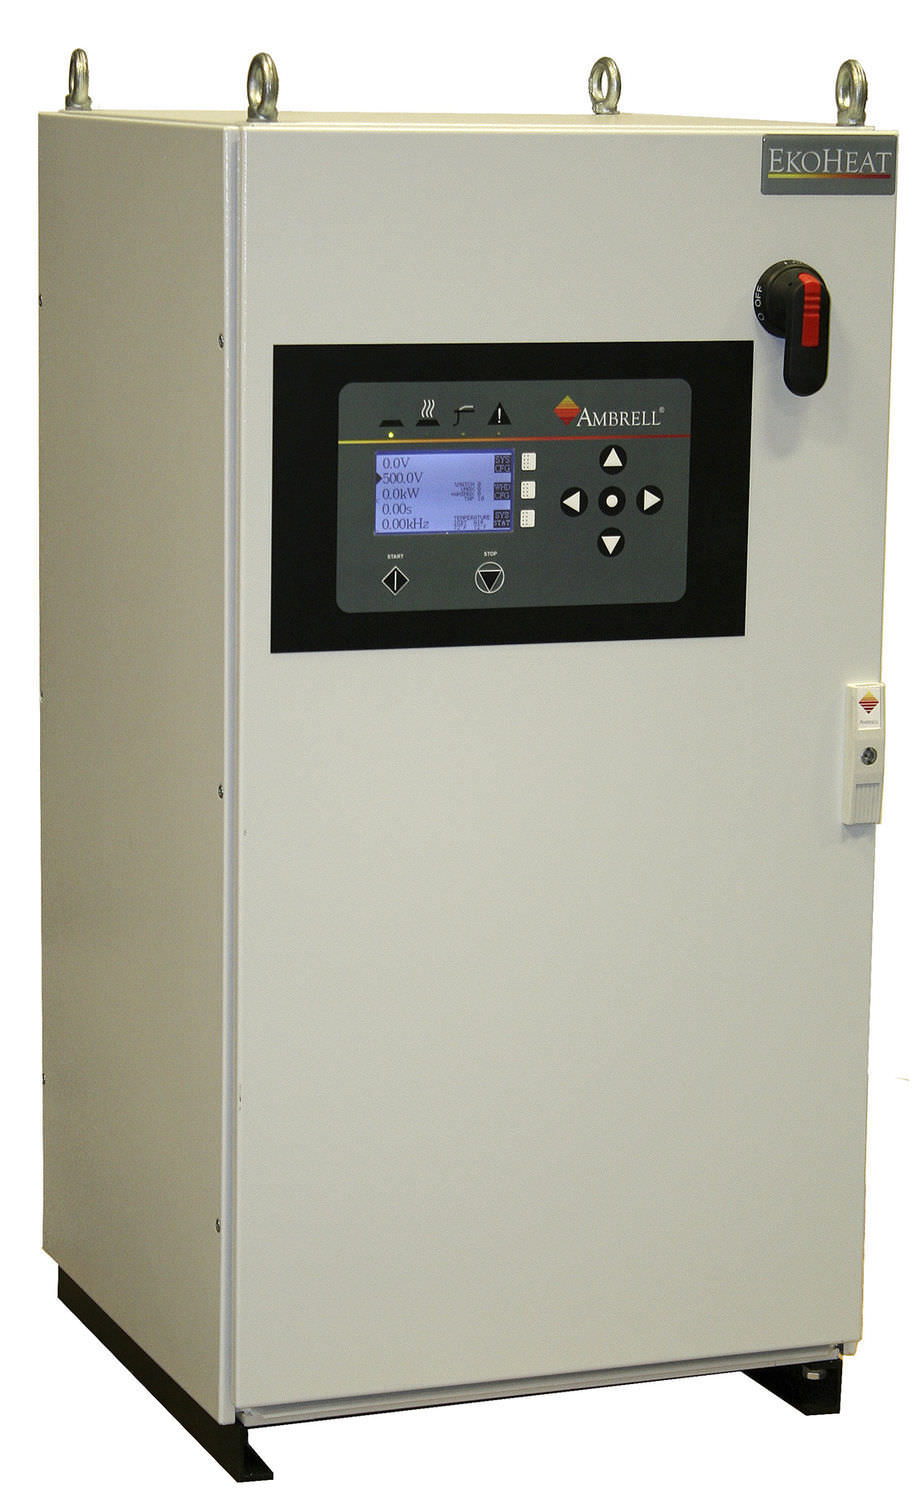 EKOHEAT 100/25 Heat treatment induction heater 100 kW, 15-40 kHz